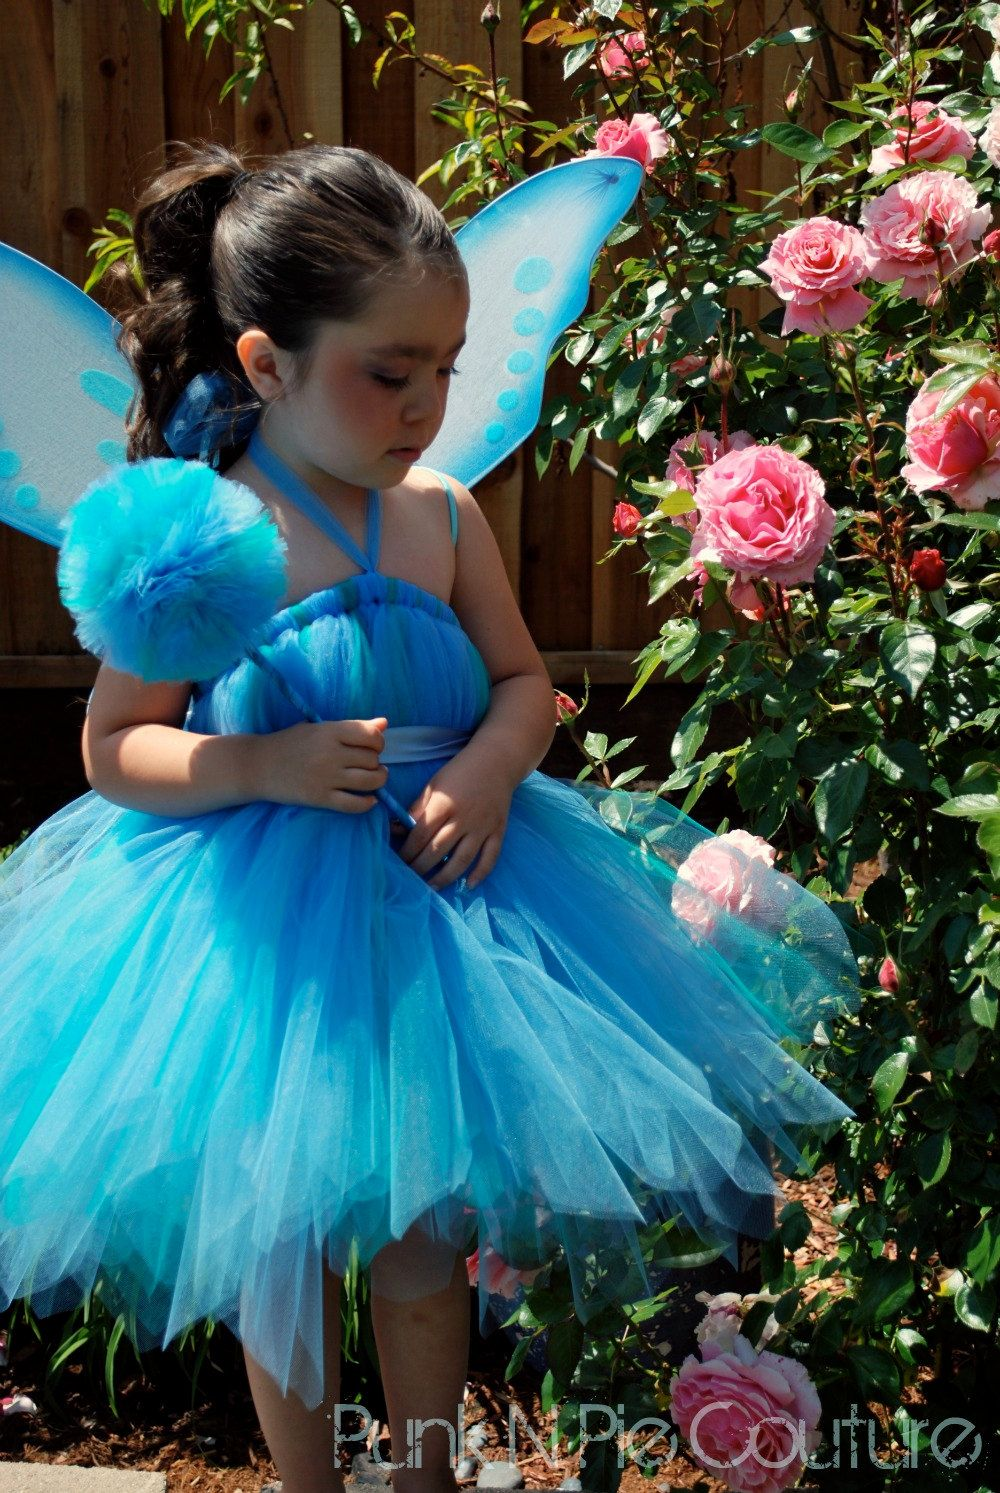 Blue Pixie Fairy Tutu Dress Birthday Dress up Set Infant - 5t  sc 1 st  Pinterest & Blue Pixie Fairy Tutu Dress Birthday Dress up Set Infant - 5t ...